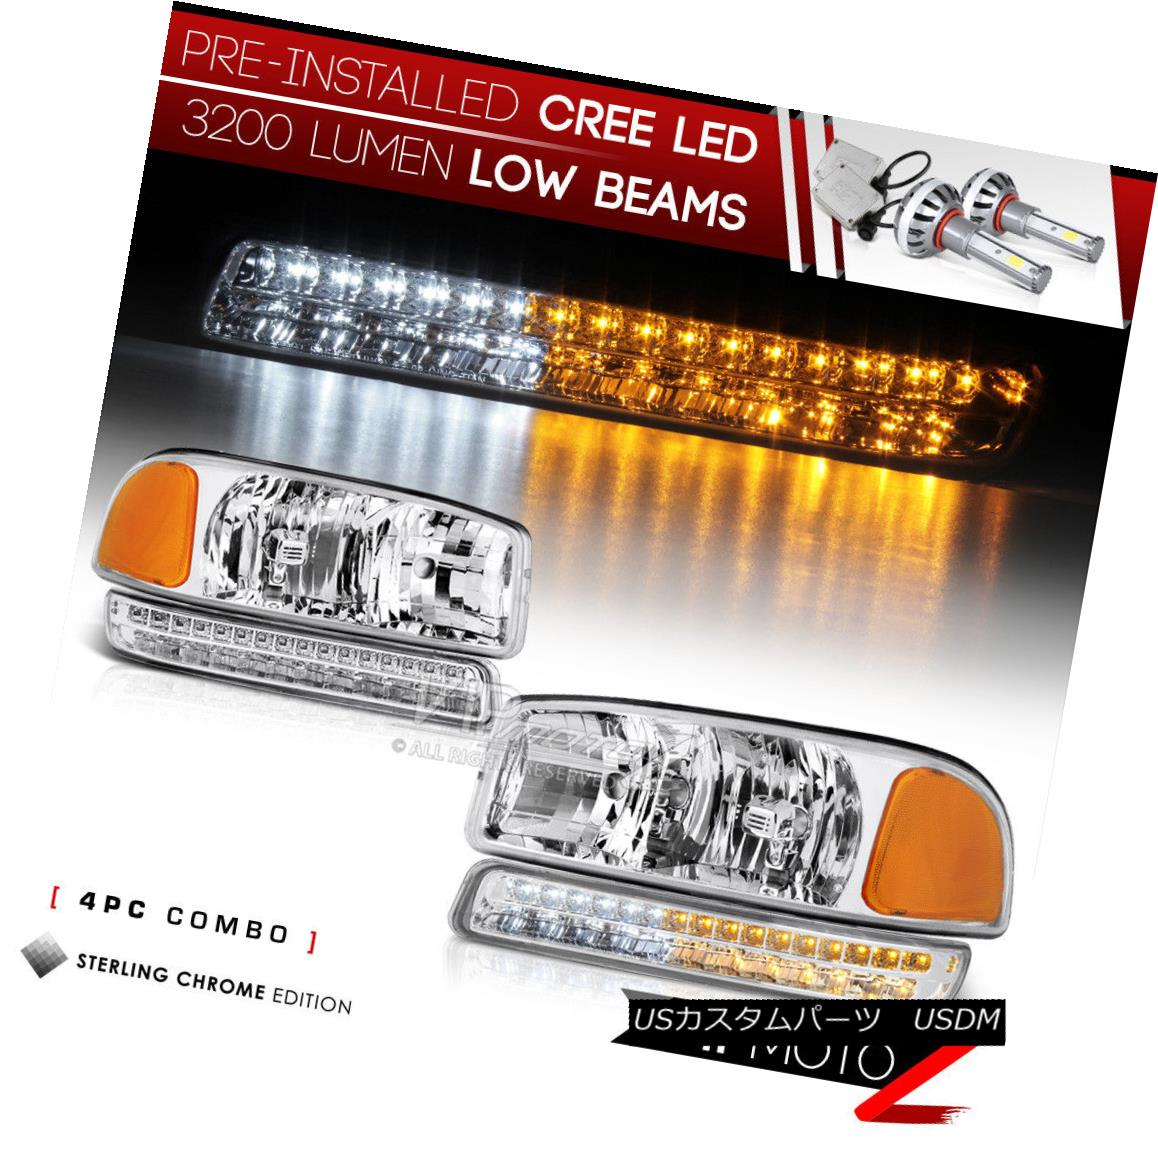 ヘッドライト !PRE-INSTALLED LED LOW BEAM! 00-06 GMC Sierra Yukon SET Headlights Bumper Lamps !プレインストールLEDロービーム! 00-06 GMC Sierra Yukon SETヘッドランプバンパーランプ